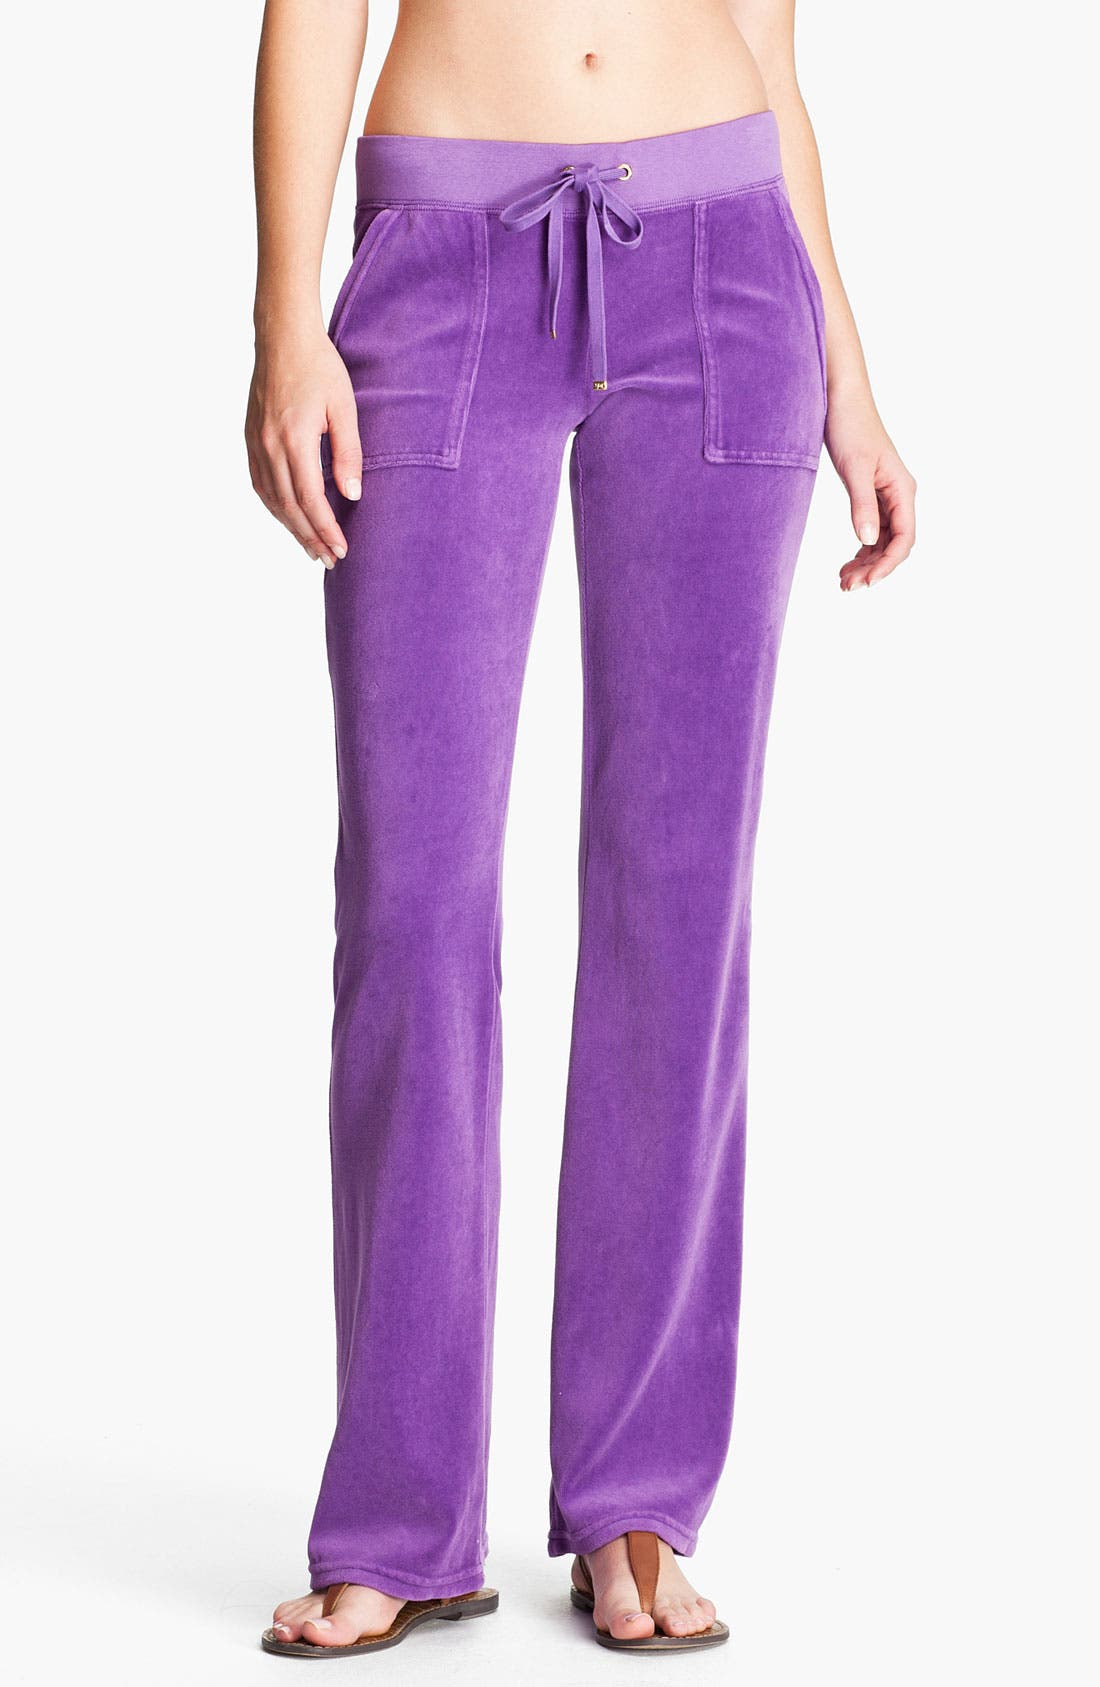 Alternate Image 1 Selected - Juicy Couture Velour Pocket Pants